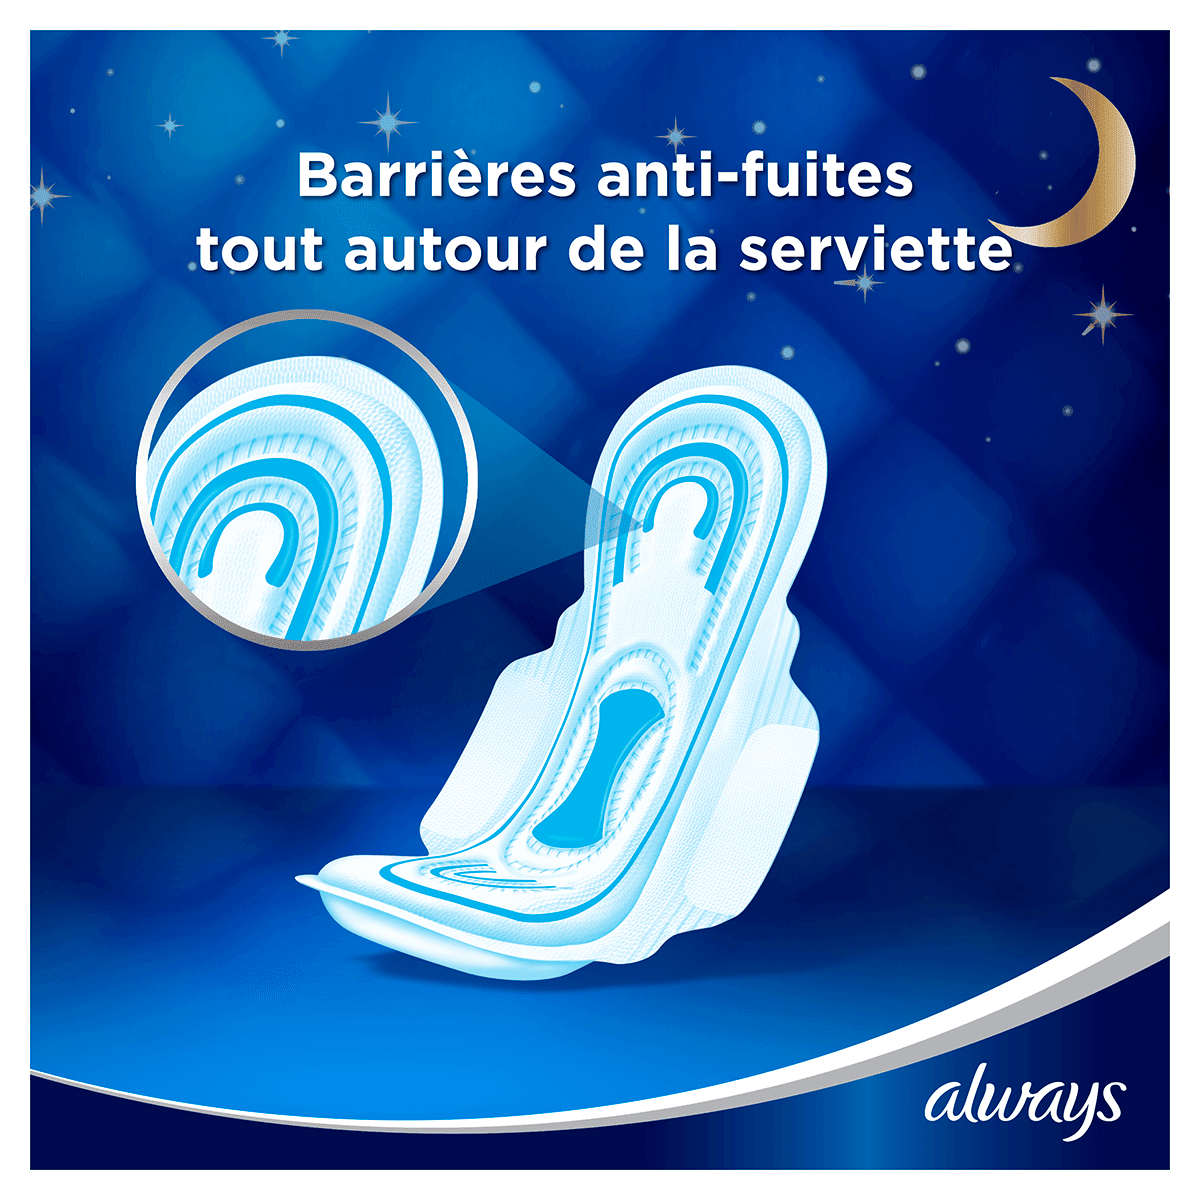 ALWAYS Maxi Night Serviettes Hygiéniques Cycle Menstruel 4